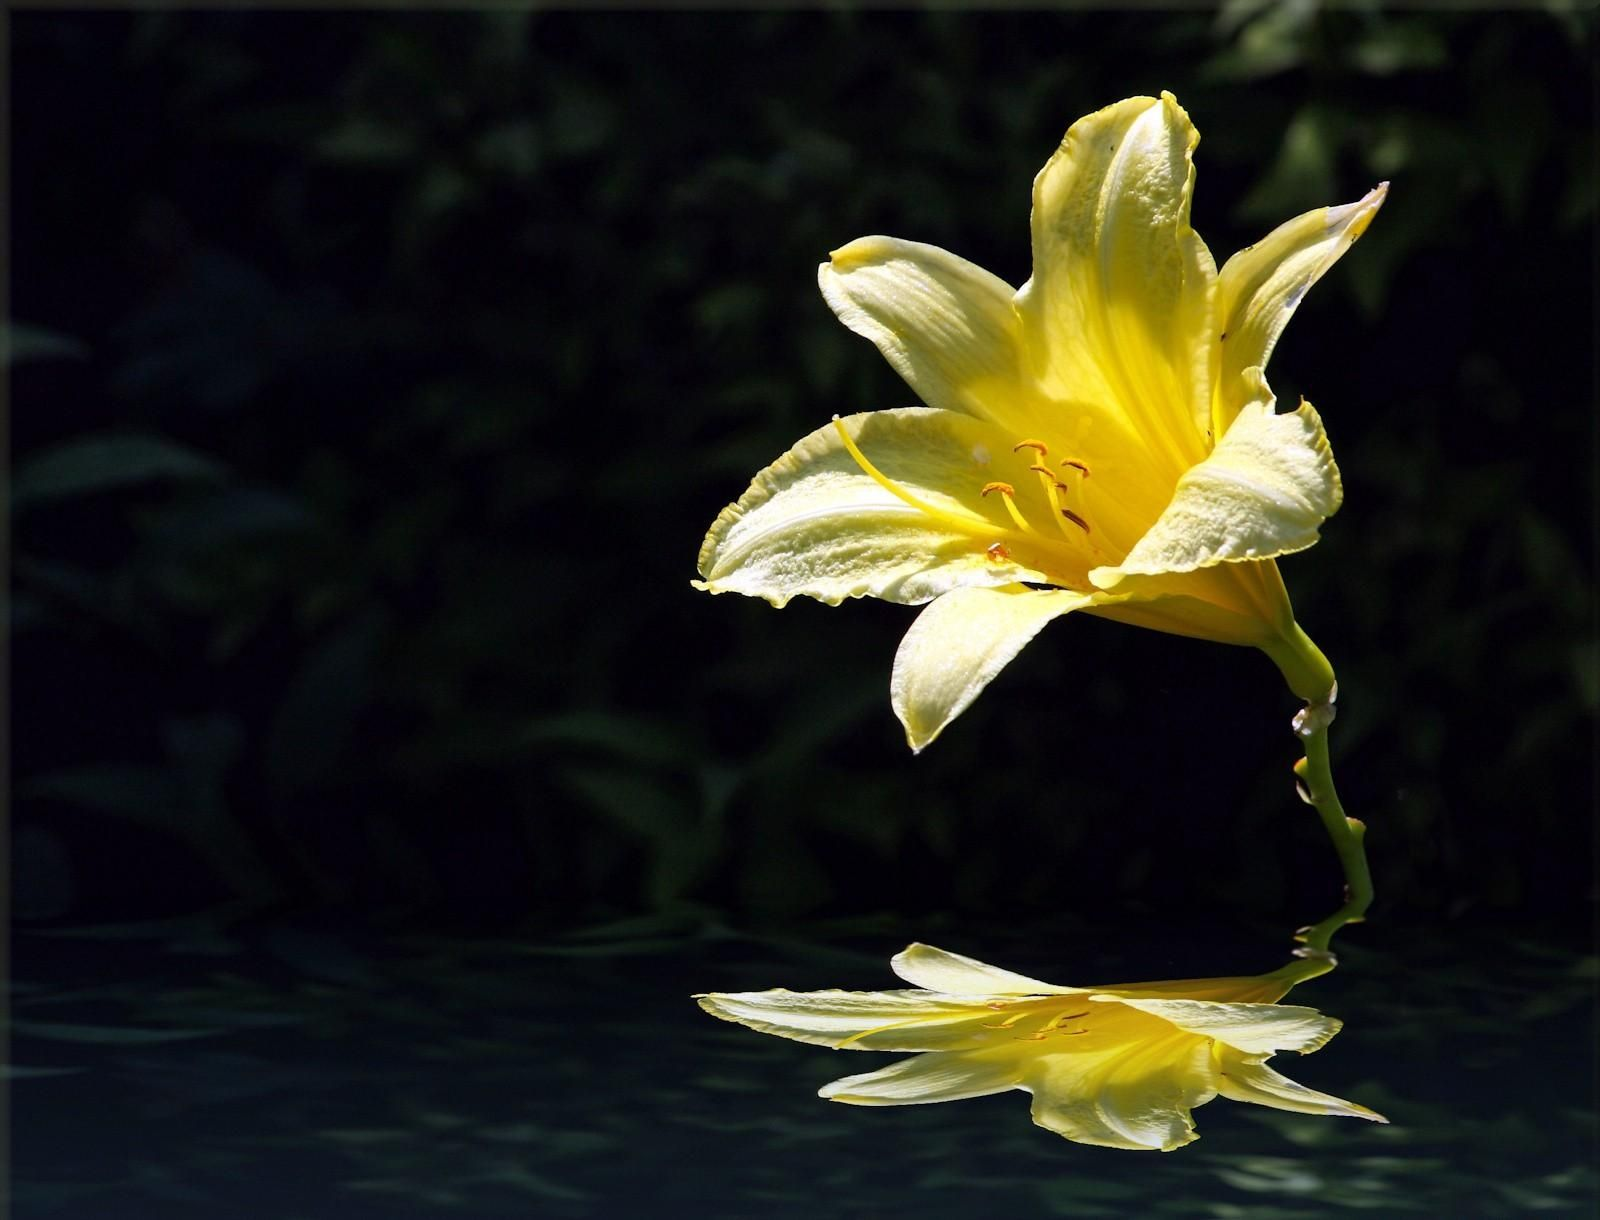 1600x1220 Wallpaper lily flower yellow bud water reflection